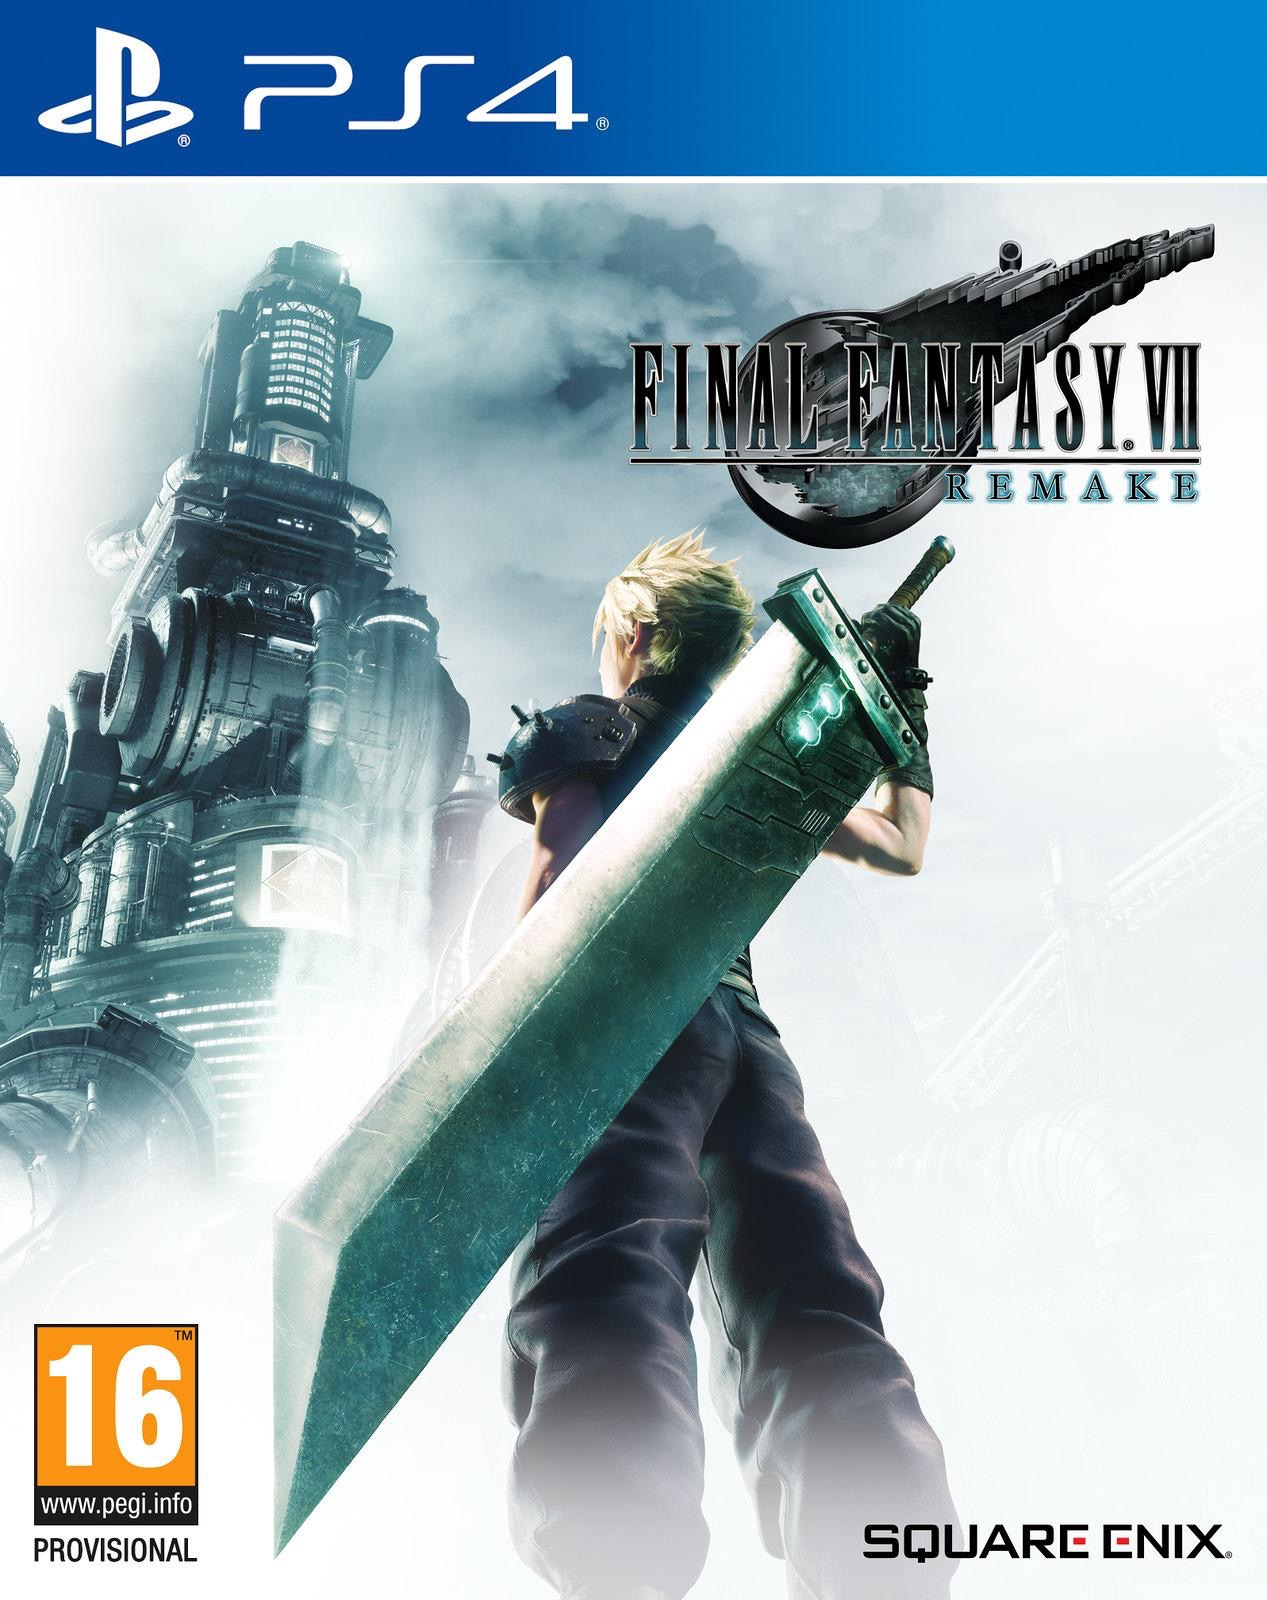 Svelata la box art ufficiale di Final Fantasy VII Remake!